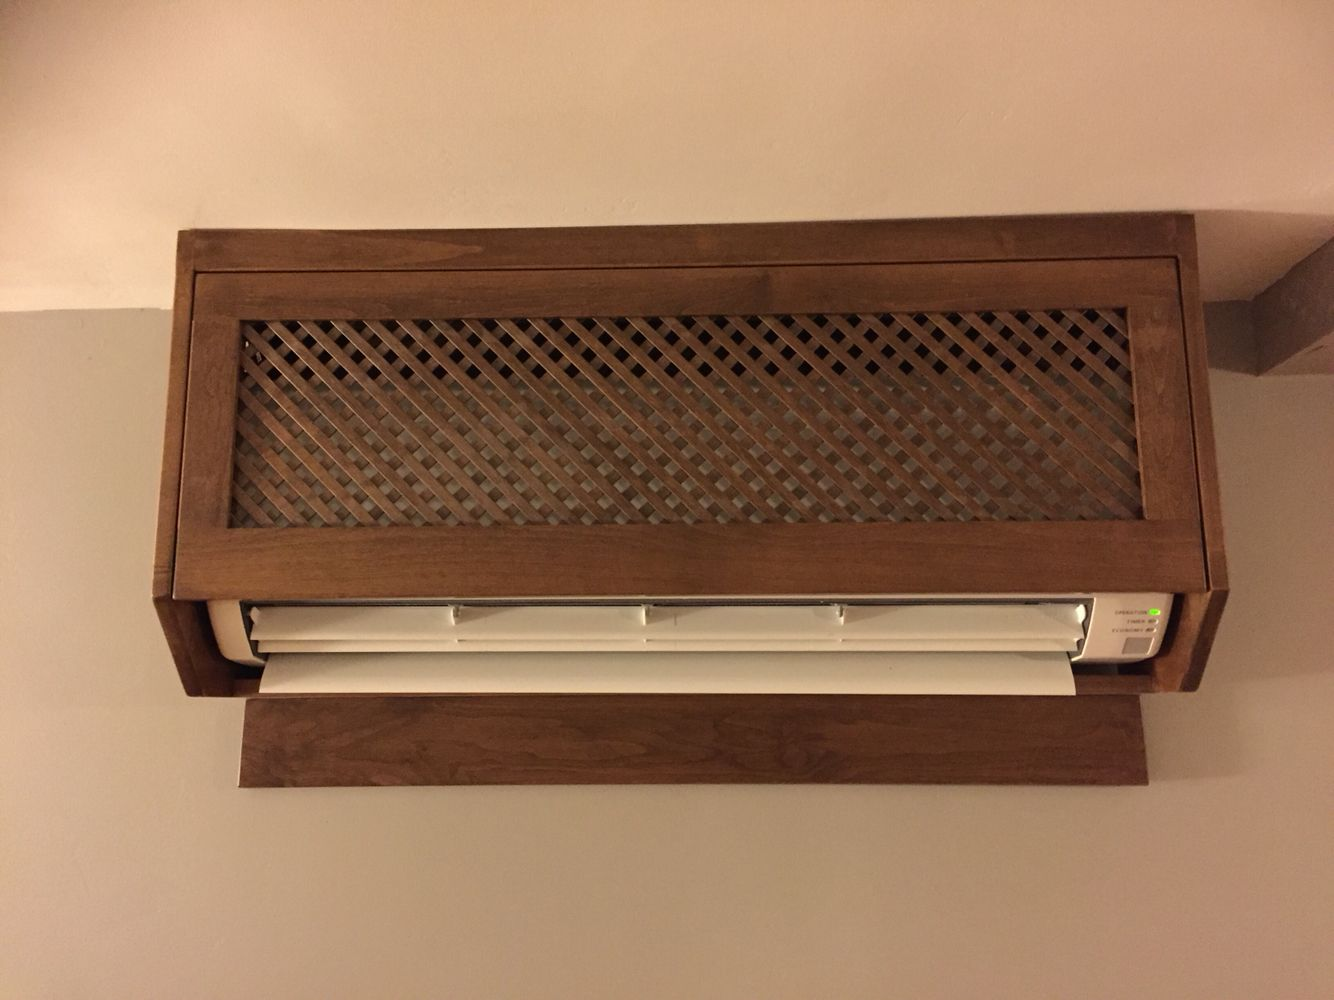 Ductless a c heater cover to make it look nice in my for How to conceal air conditioner unit